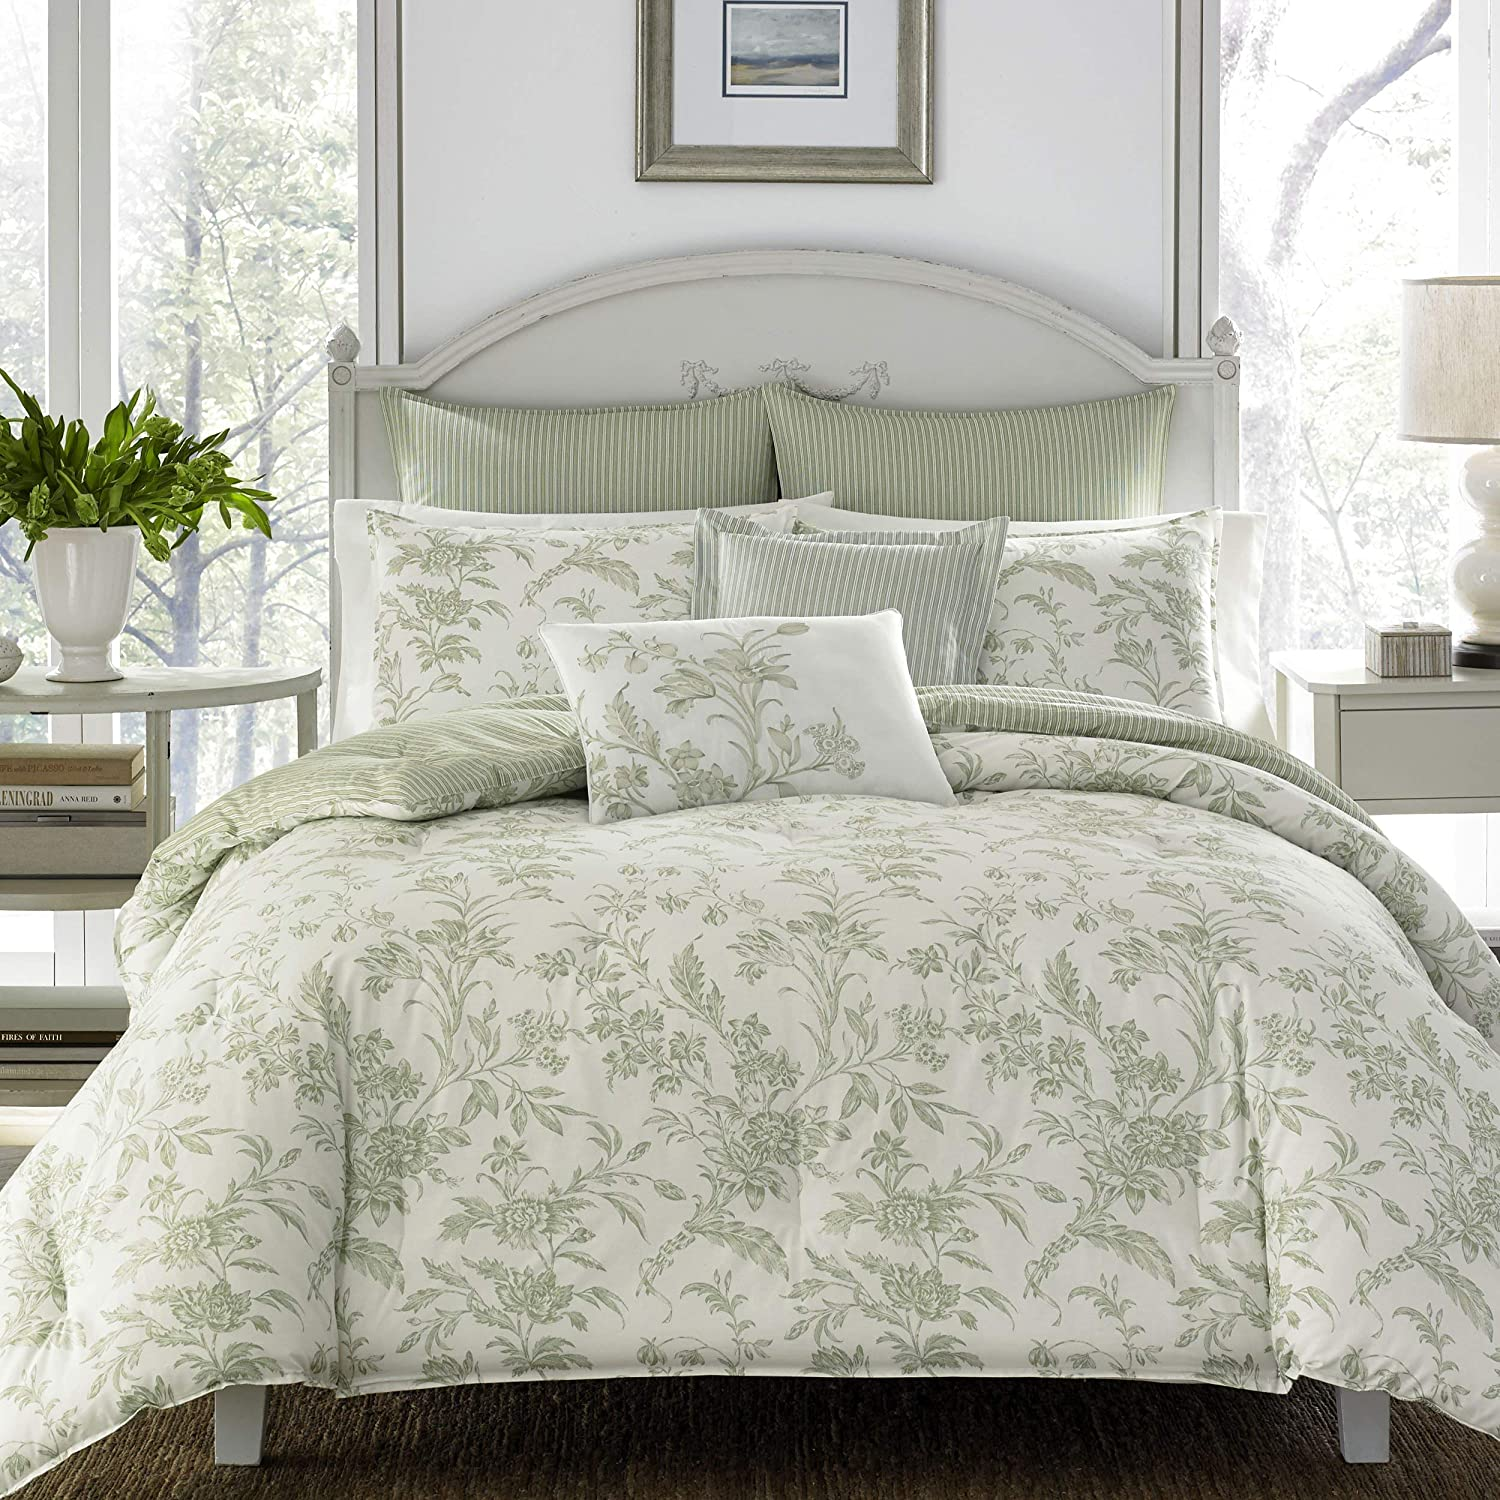 Laura Ashley Home Ultra-Cheap Deals - Natalie Collection Boston Mall Soft Luxury C Ultra 5pc